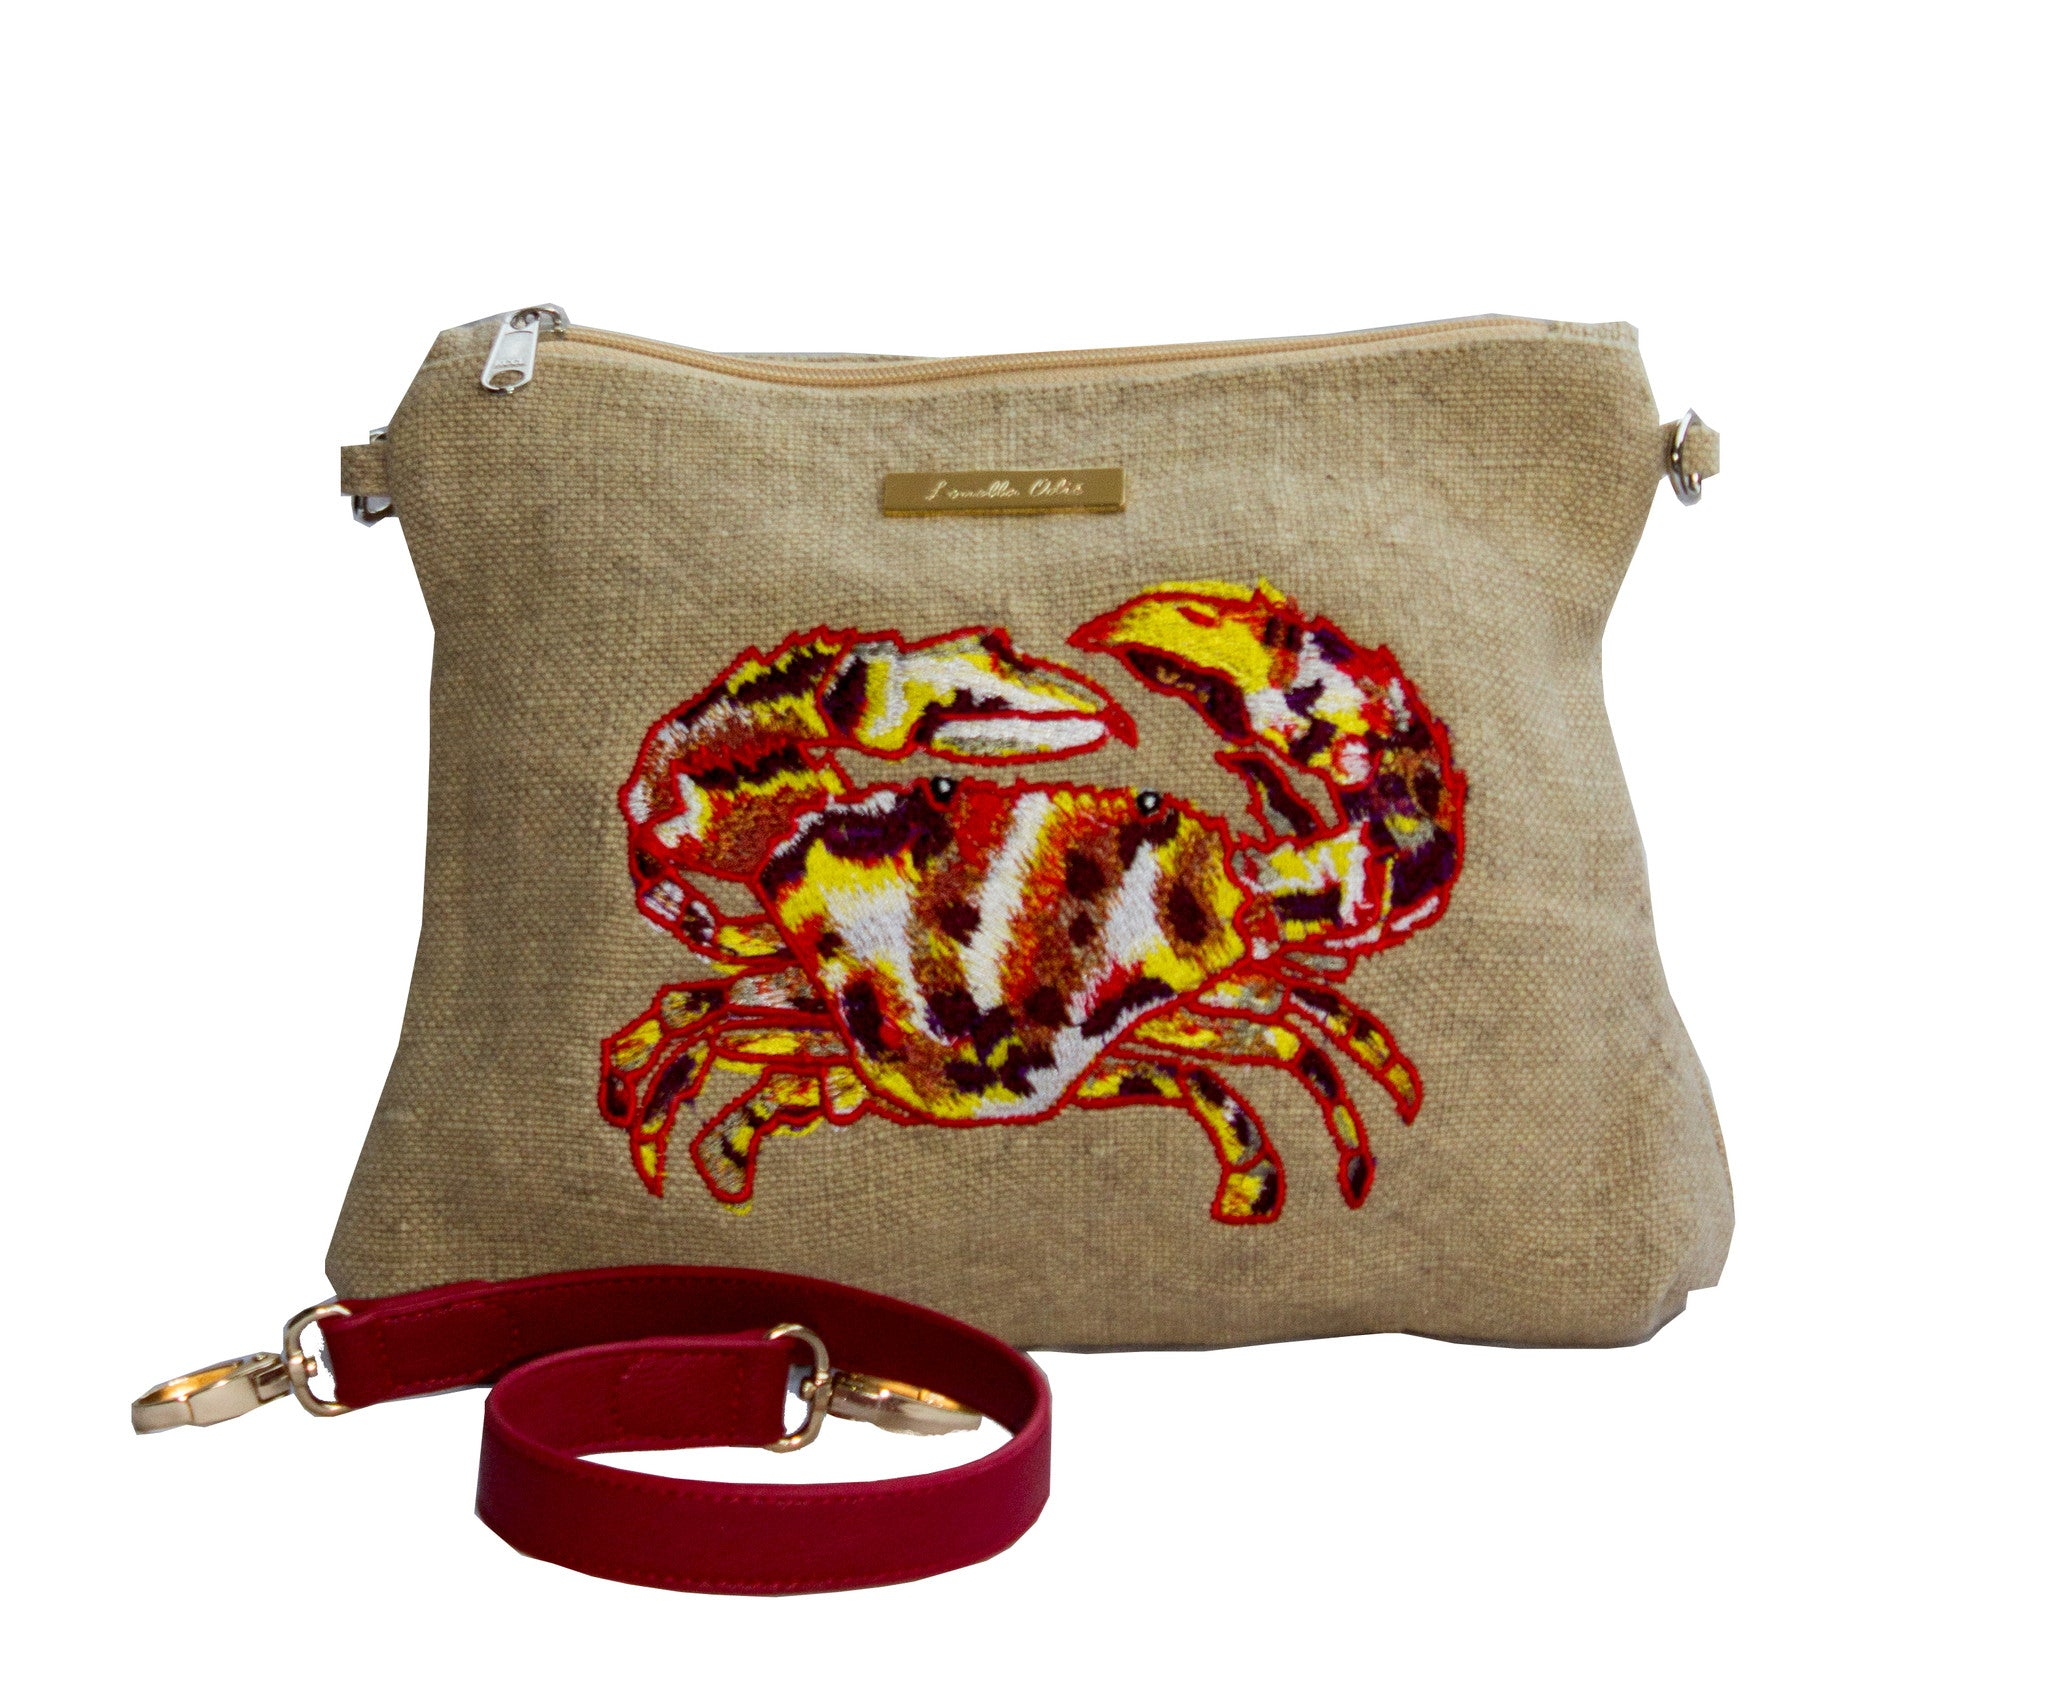 Detachable Strap on Crab Clutch Bag Louella Odie